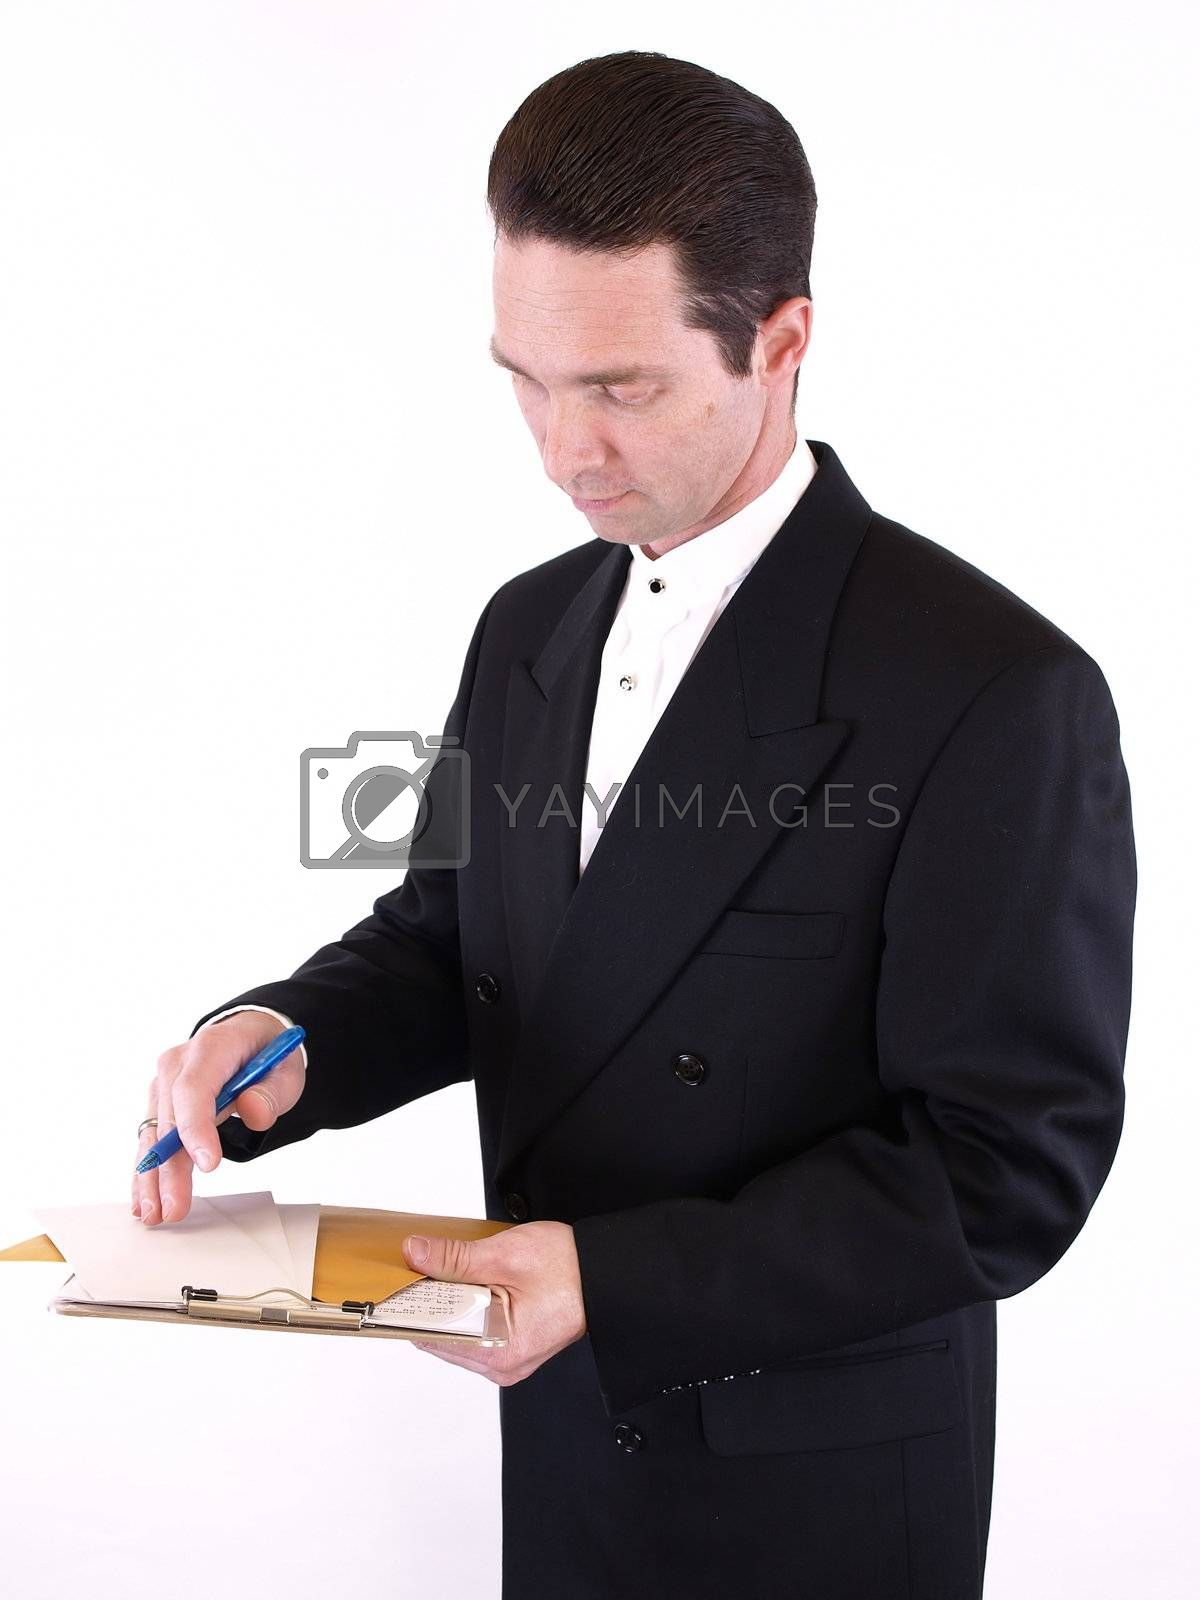 Adult male in a suit holding a clipboard with envelopes and a pen. Isolated on a white background.